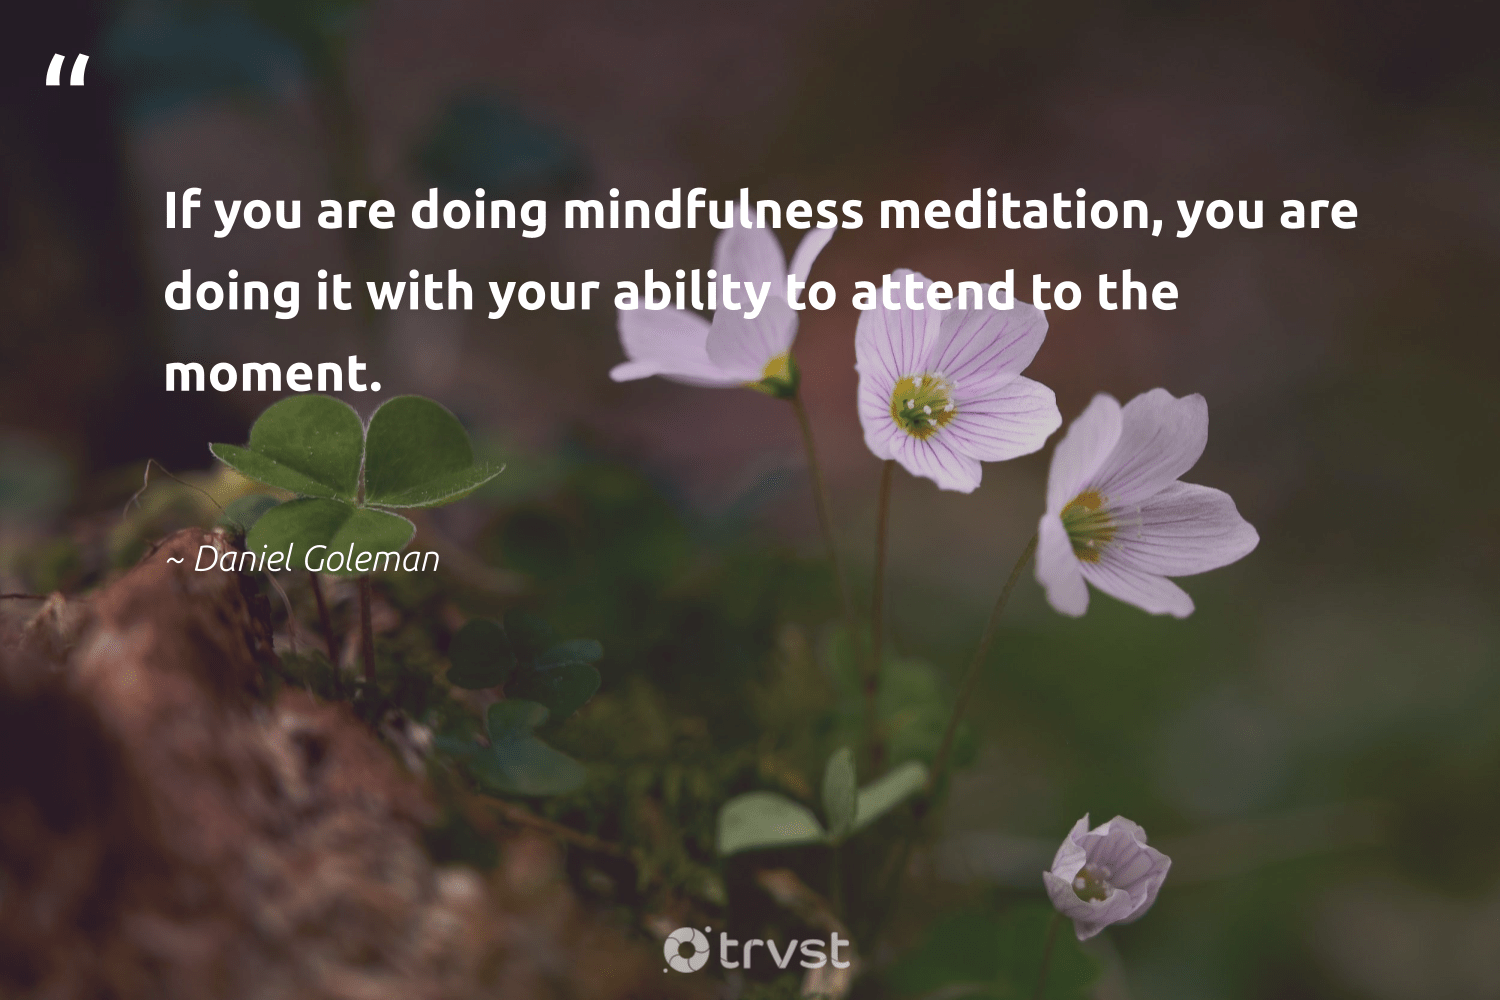 """""""If you are doing mindfulness meditation, you are doing it with your ability to attend to the moment.""""  - Daniel Goleman #trvst #quotes #mindfulness #meditation #motivation #creativemindset #mentalheatlh #health #bethechange #growthmindset #positivity #happiness"""